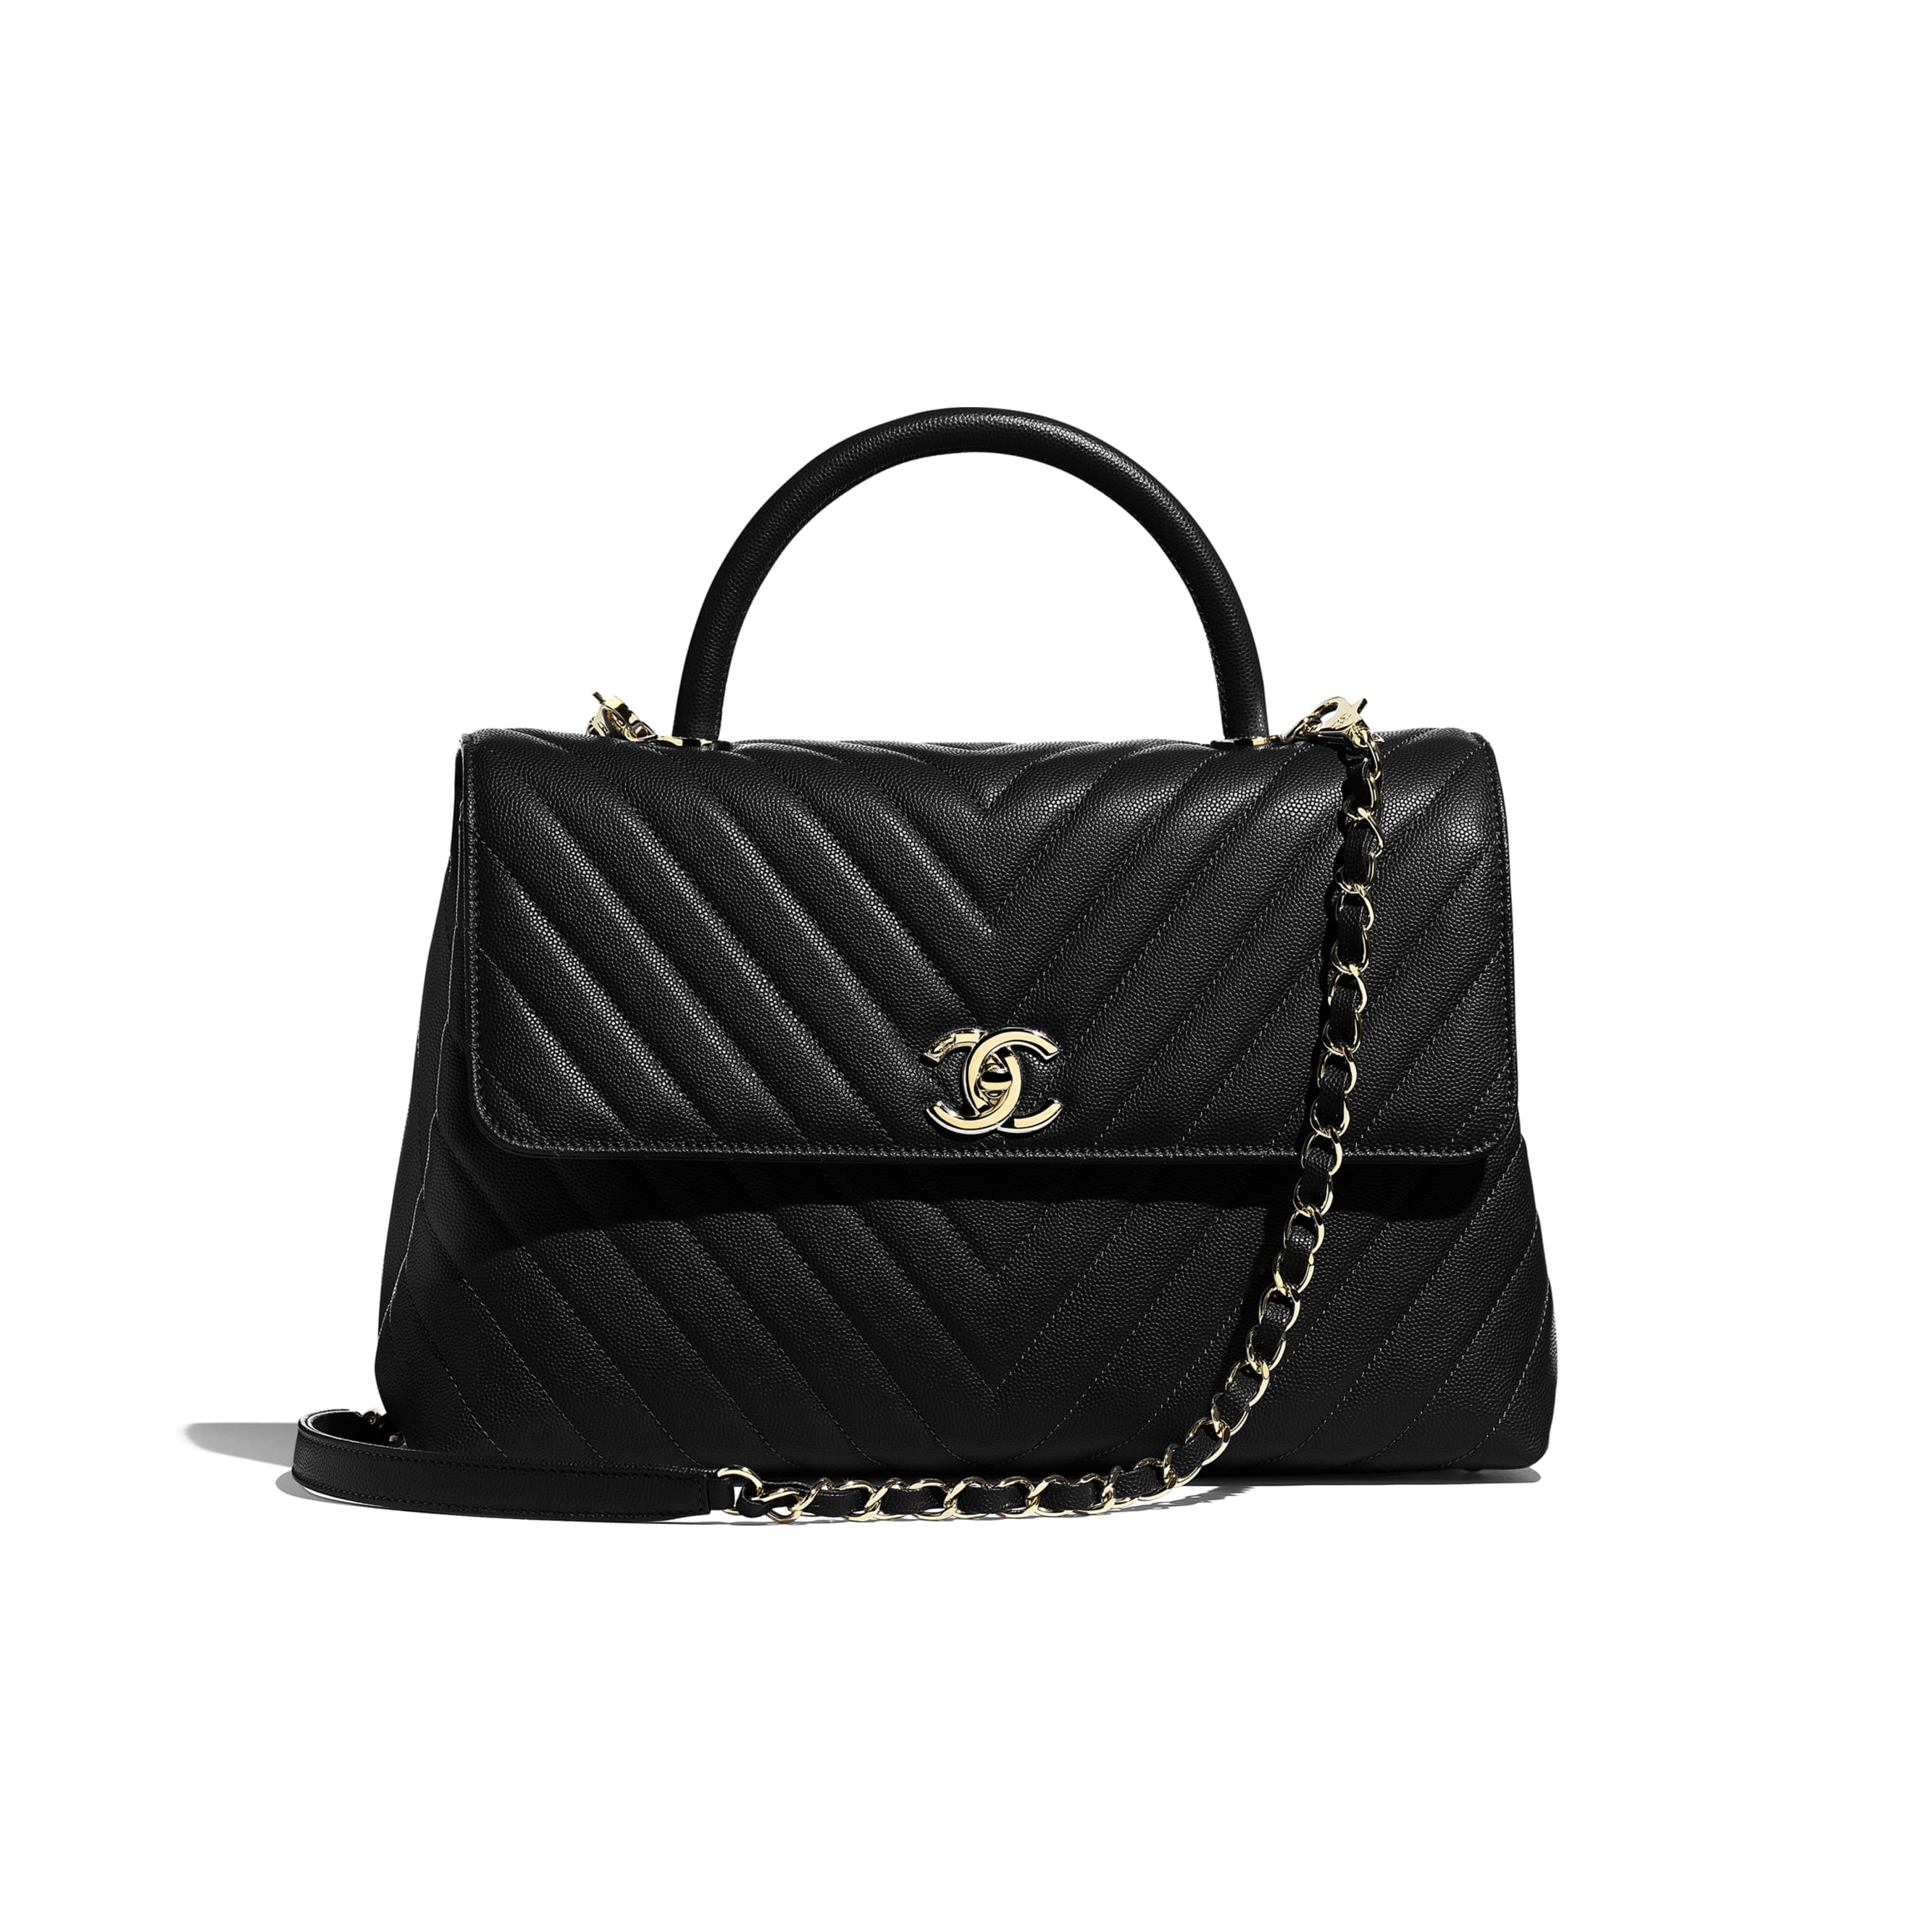 Large Flap Bag with Top Handle - Black - Grained Calfskin & Gold-Tone Metal - CHANEL - Default view - see standard sized version